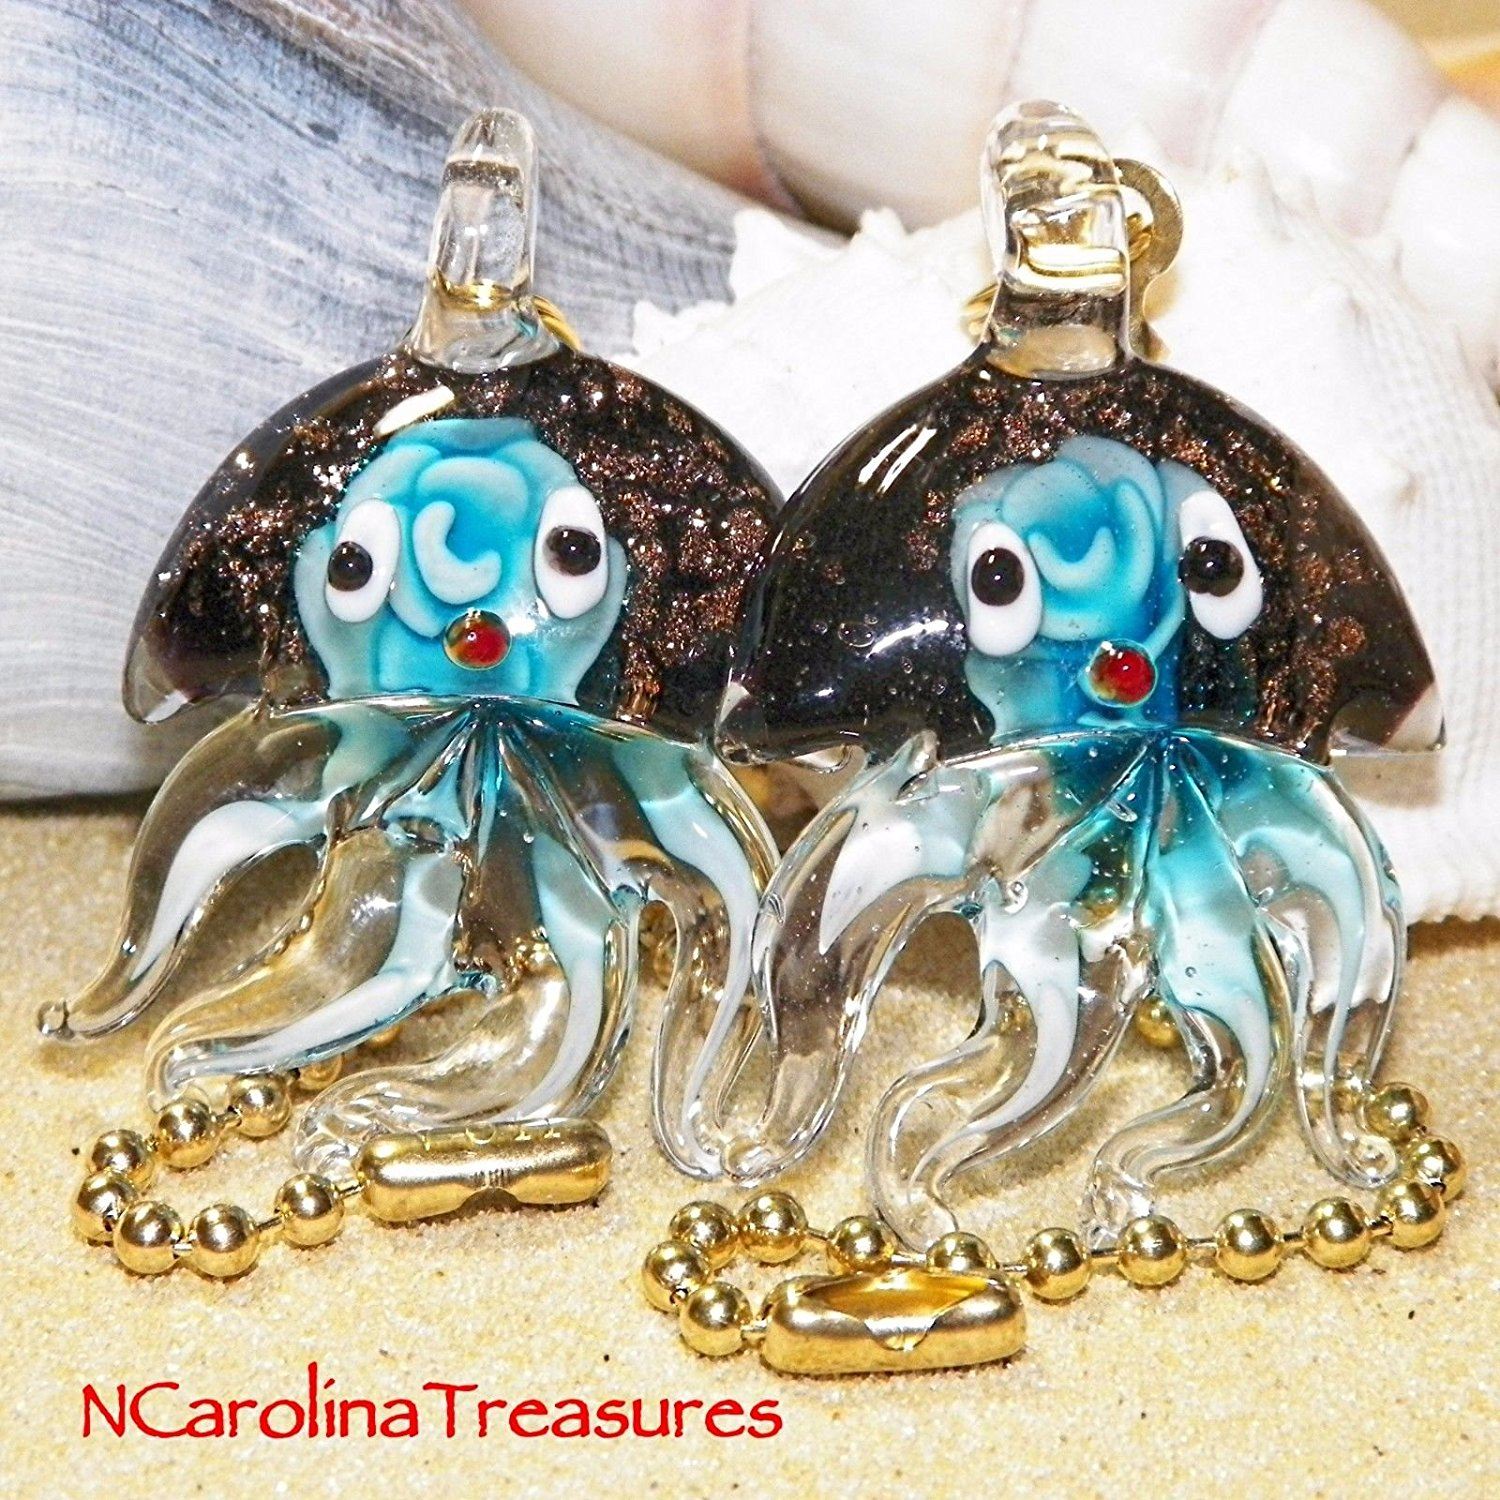 (USA Warehouse) AQUA FLORAL JELLYFISH GLITTER GLASS CEILING FAN LIGHT SWITCH PULL LG PAIR J123 -/PT# HF983-1754418433